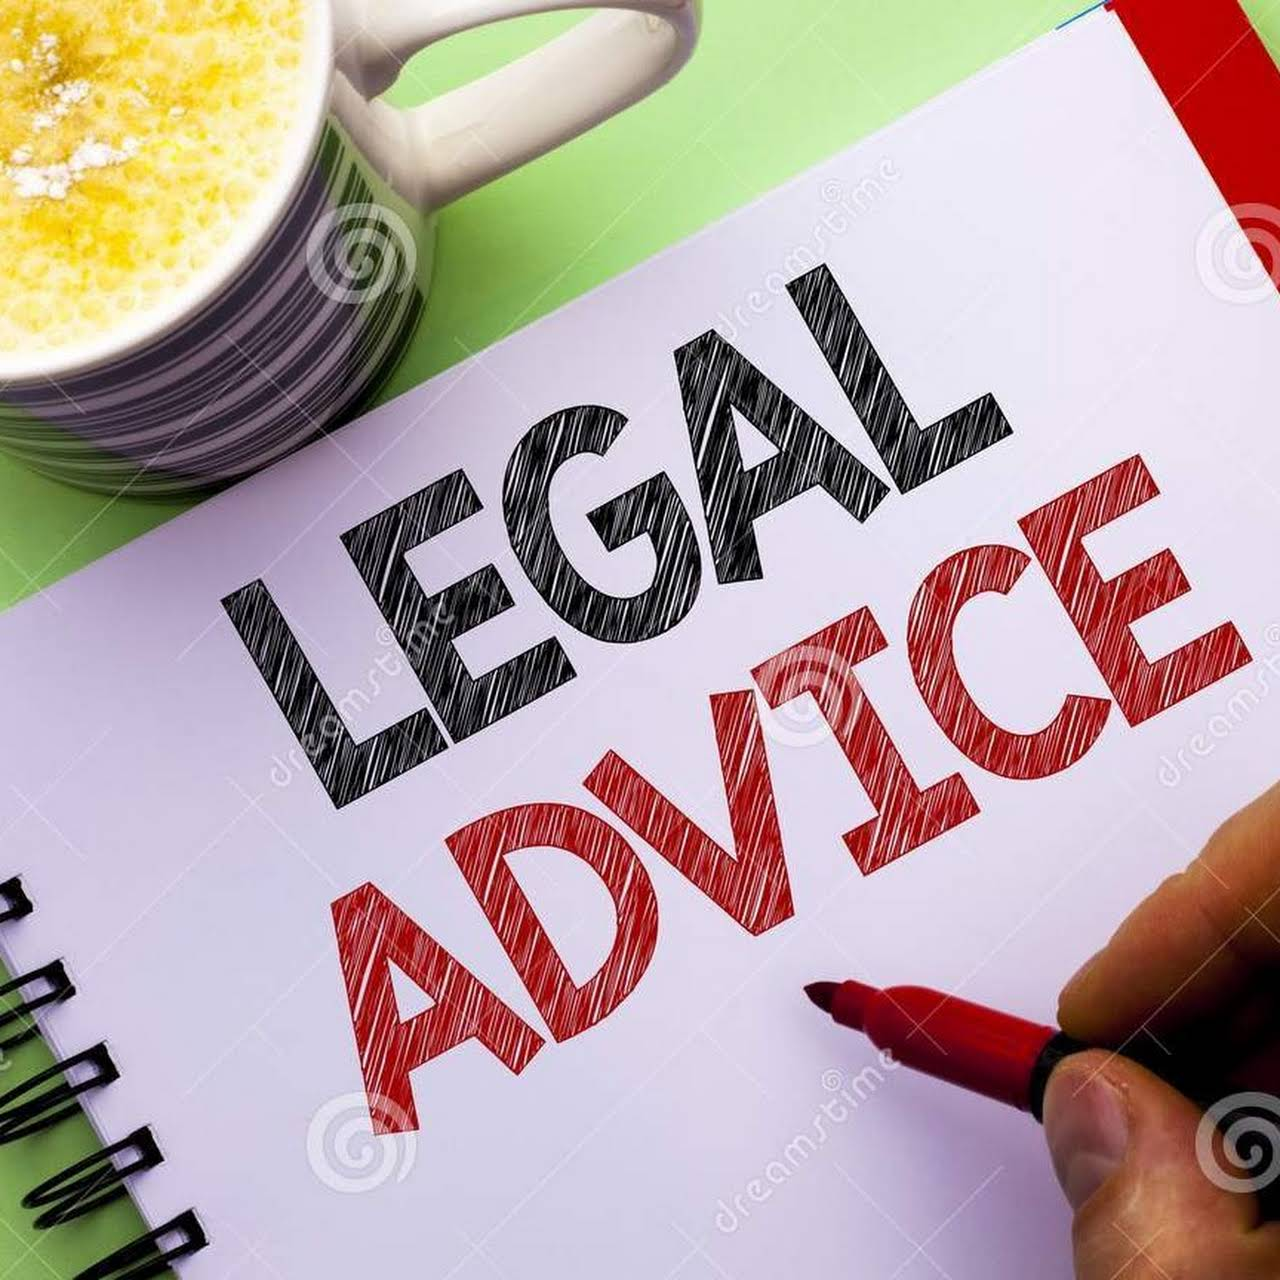 Advocate Mukesh Solanki & Co  | Lawyers, Solicitors & Legal